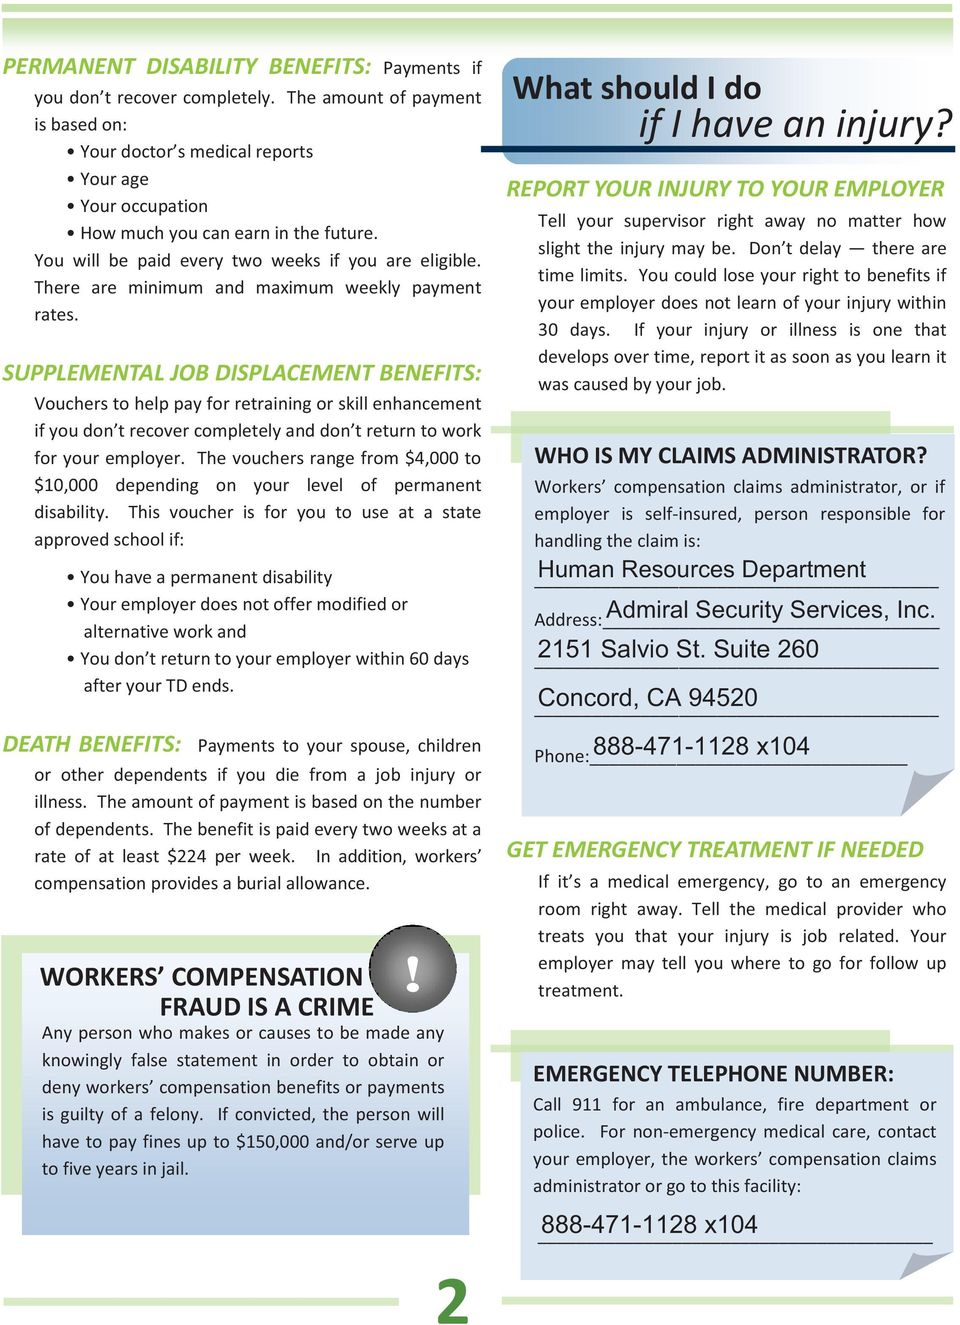 workers compensation? - PDF